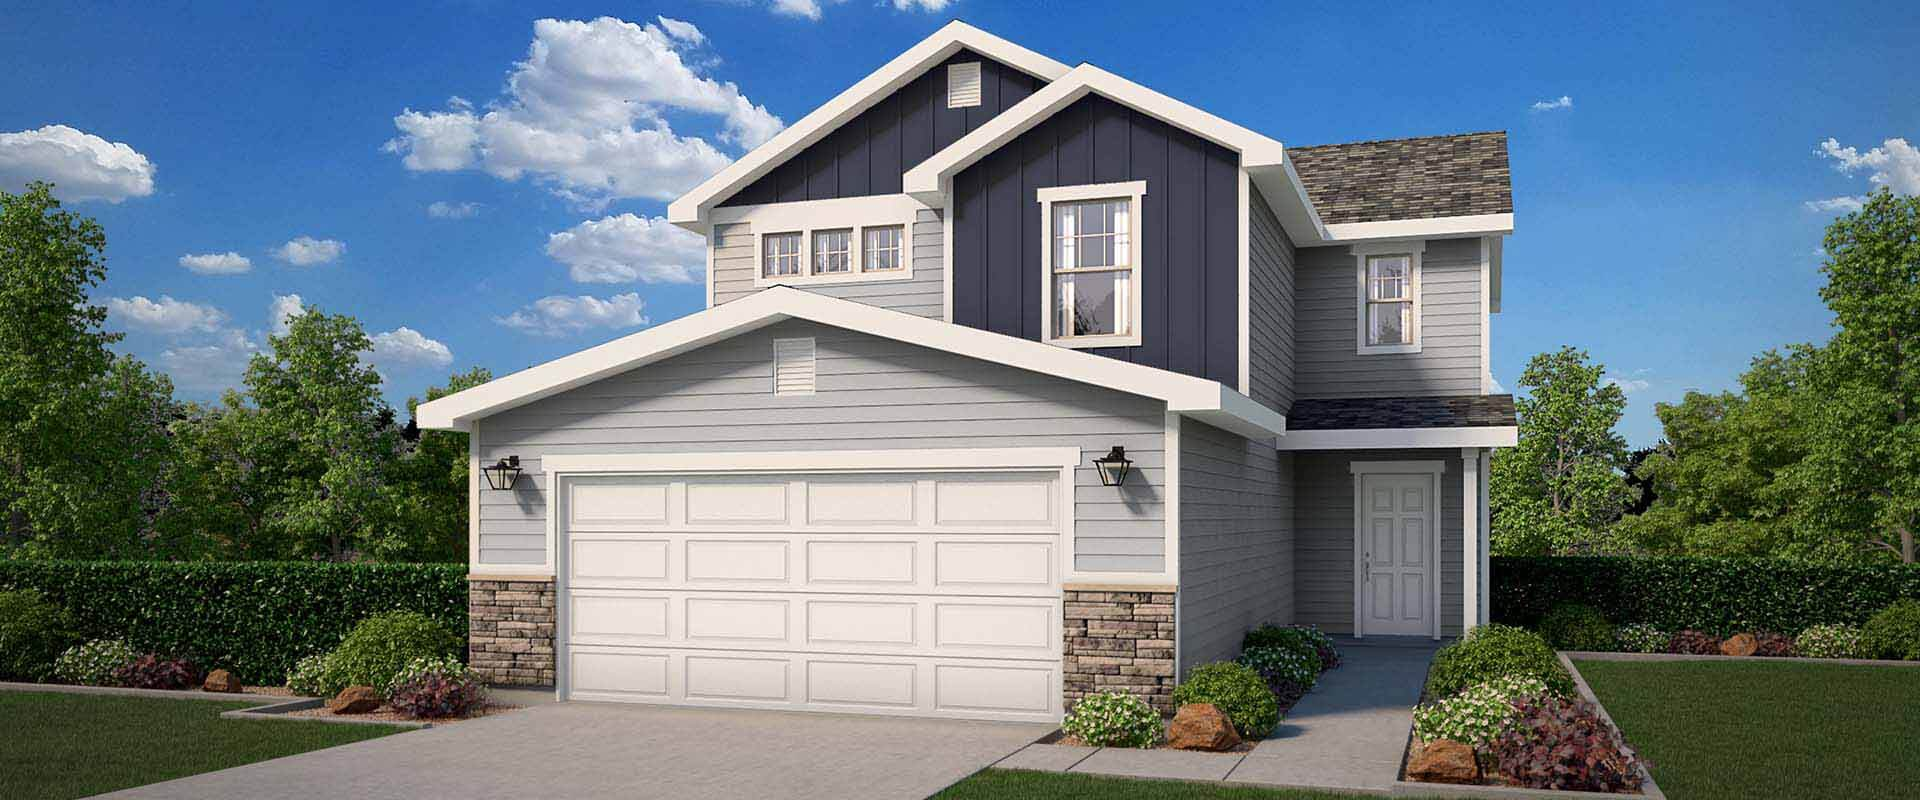 Payette-new-homes-boise-idaho-hubble-homes-country.jpg